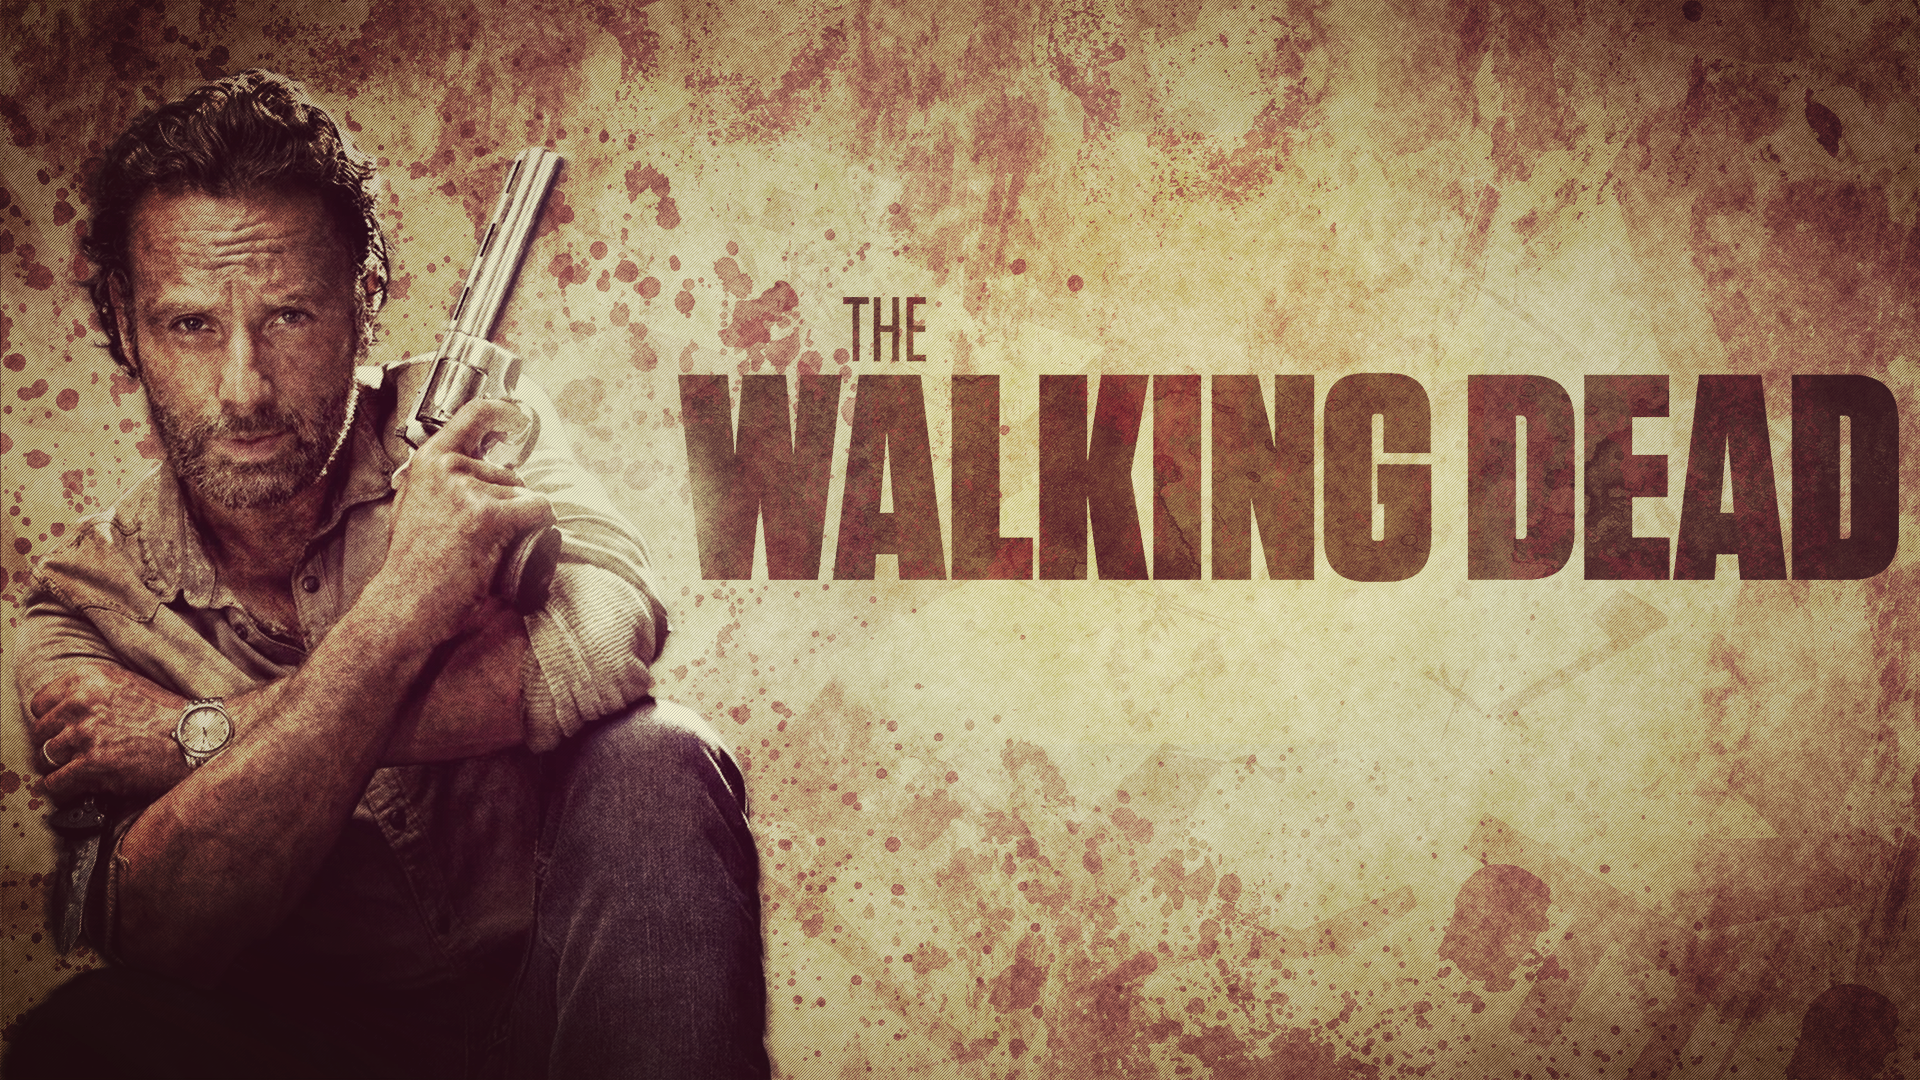 The Walking Dead - Rick Grimes by Mennisian